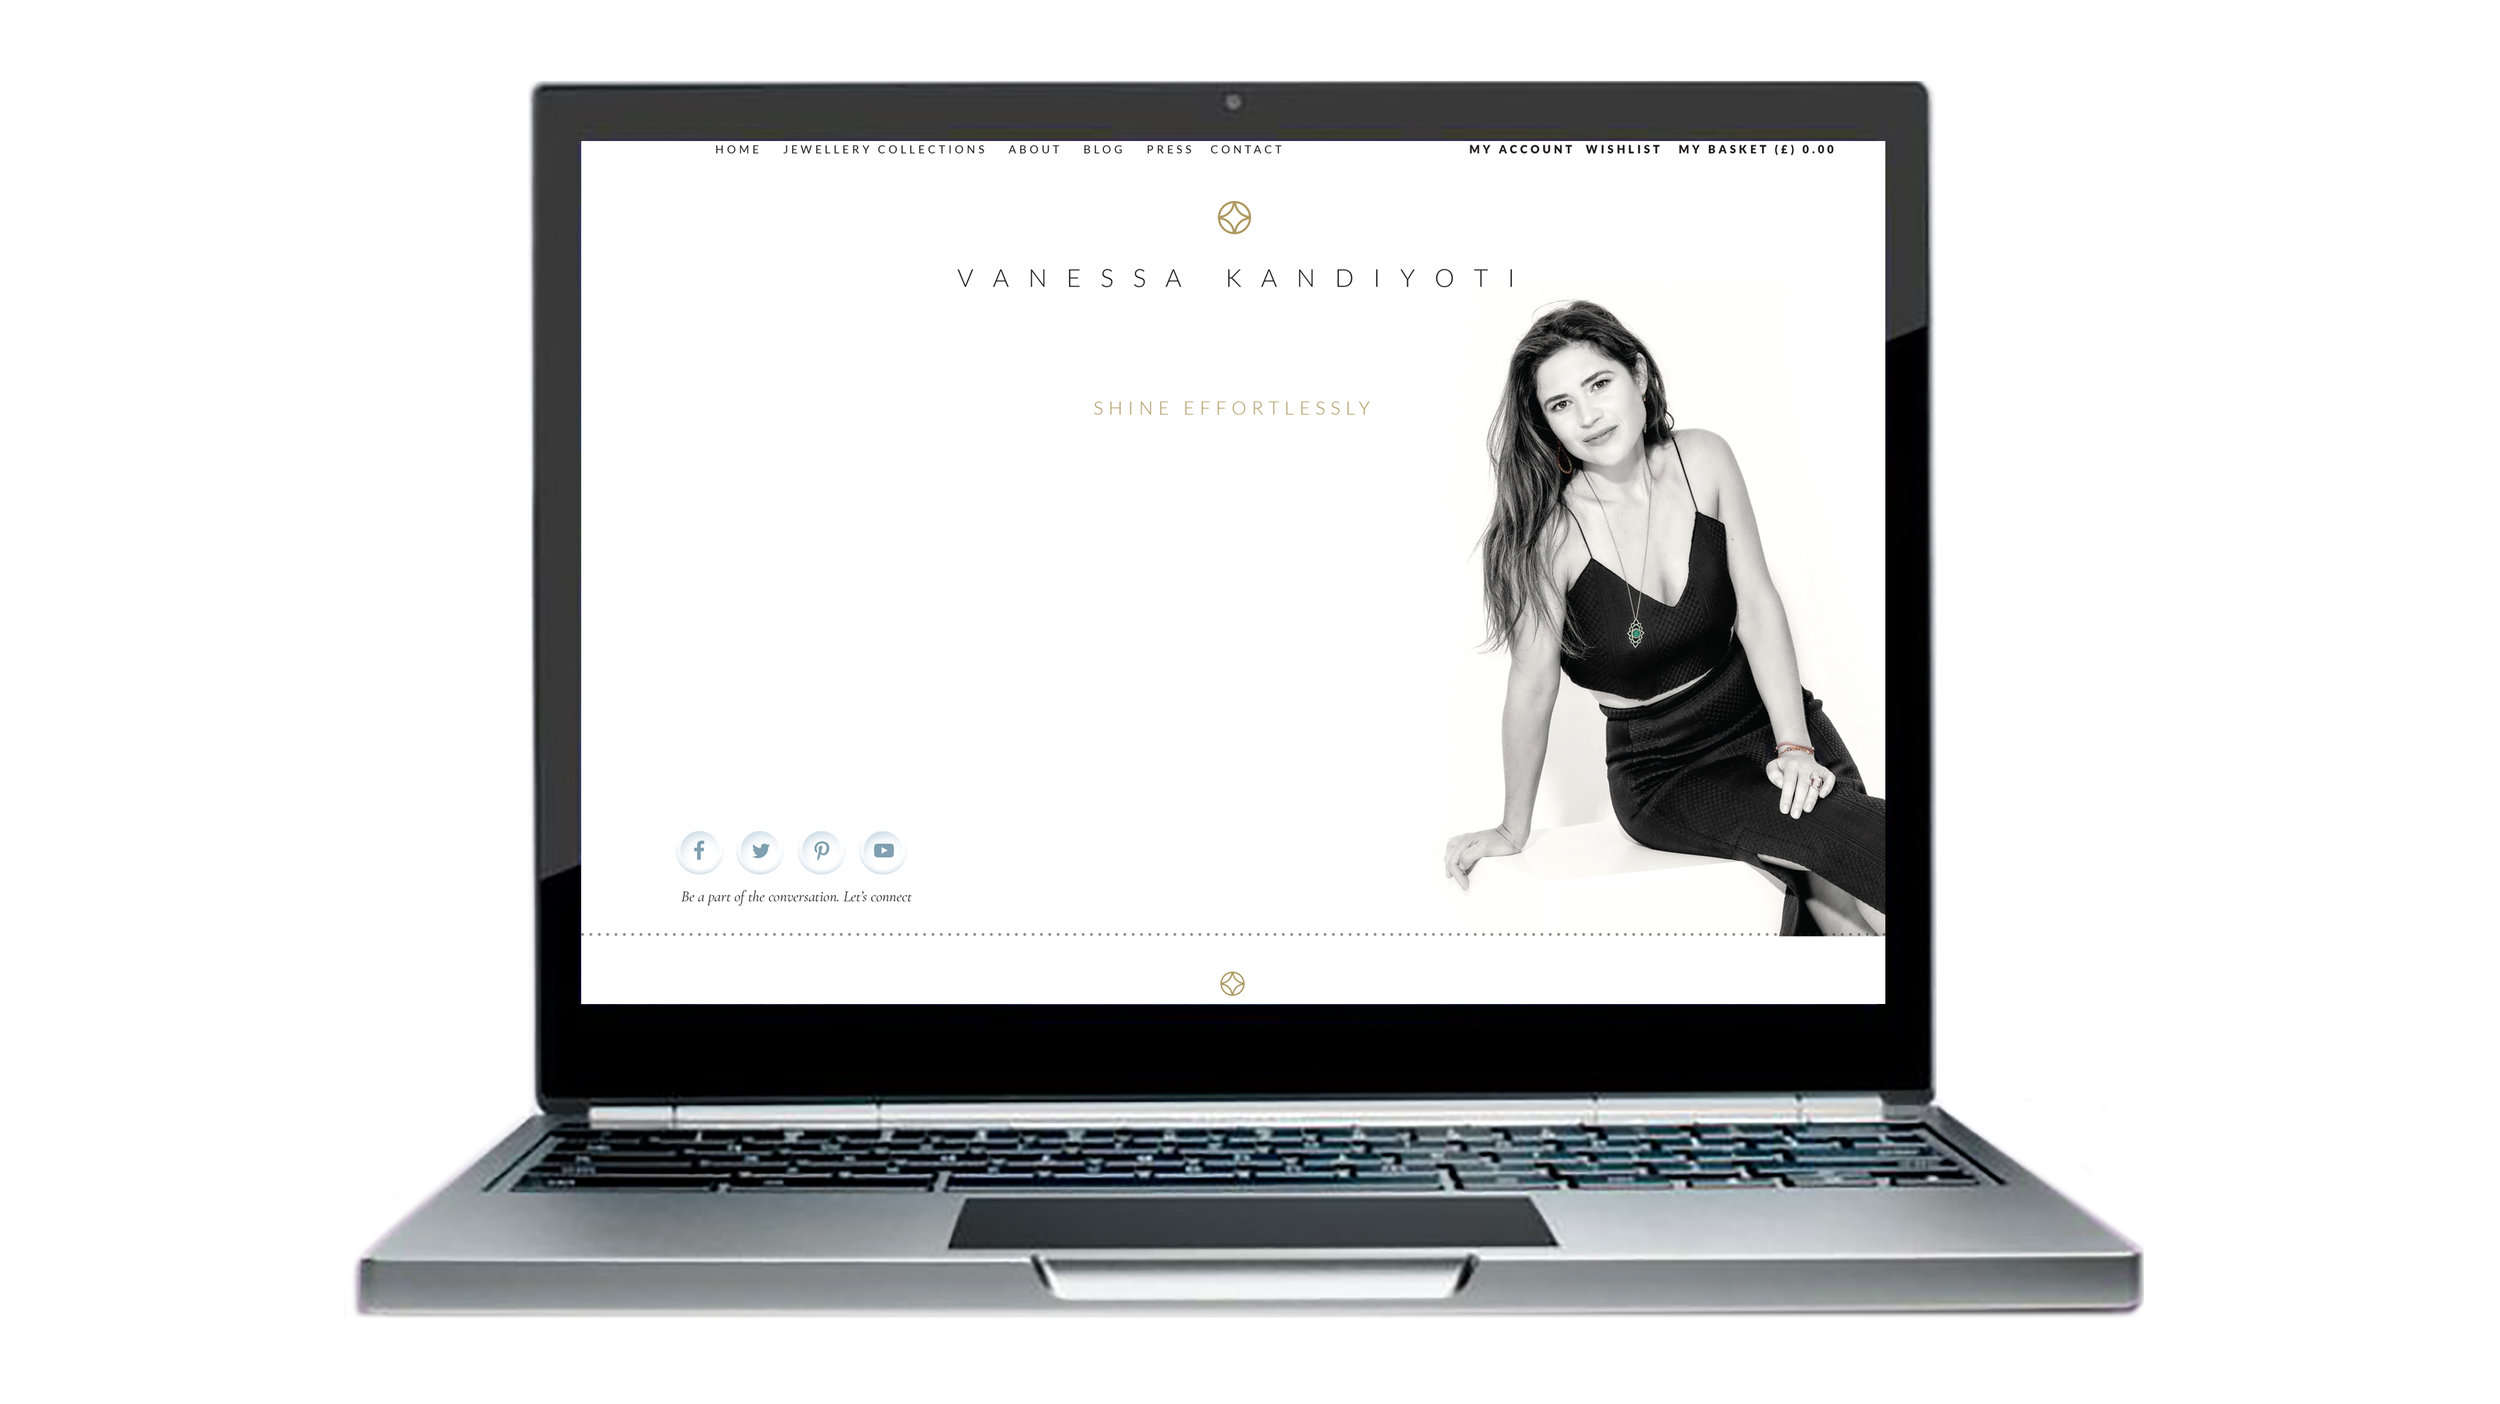 VANESSSA KANDIYOTI - SHINE EFFORTLESSLYFamed London jewelry designer, author and thought-leader, Vanessa Kandiyoti hired me to build her online presence and to give her brand a strategic reboot in 2016. The work included a redesign of her e-commerce site, the merging of her book,